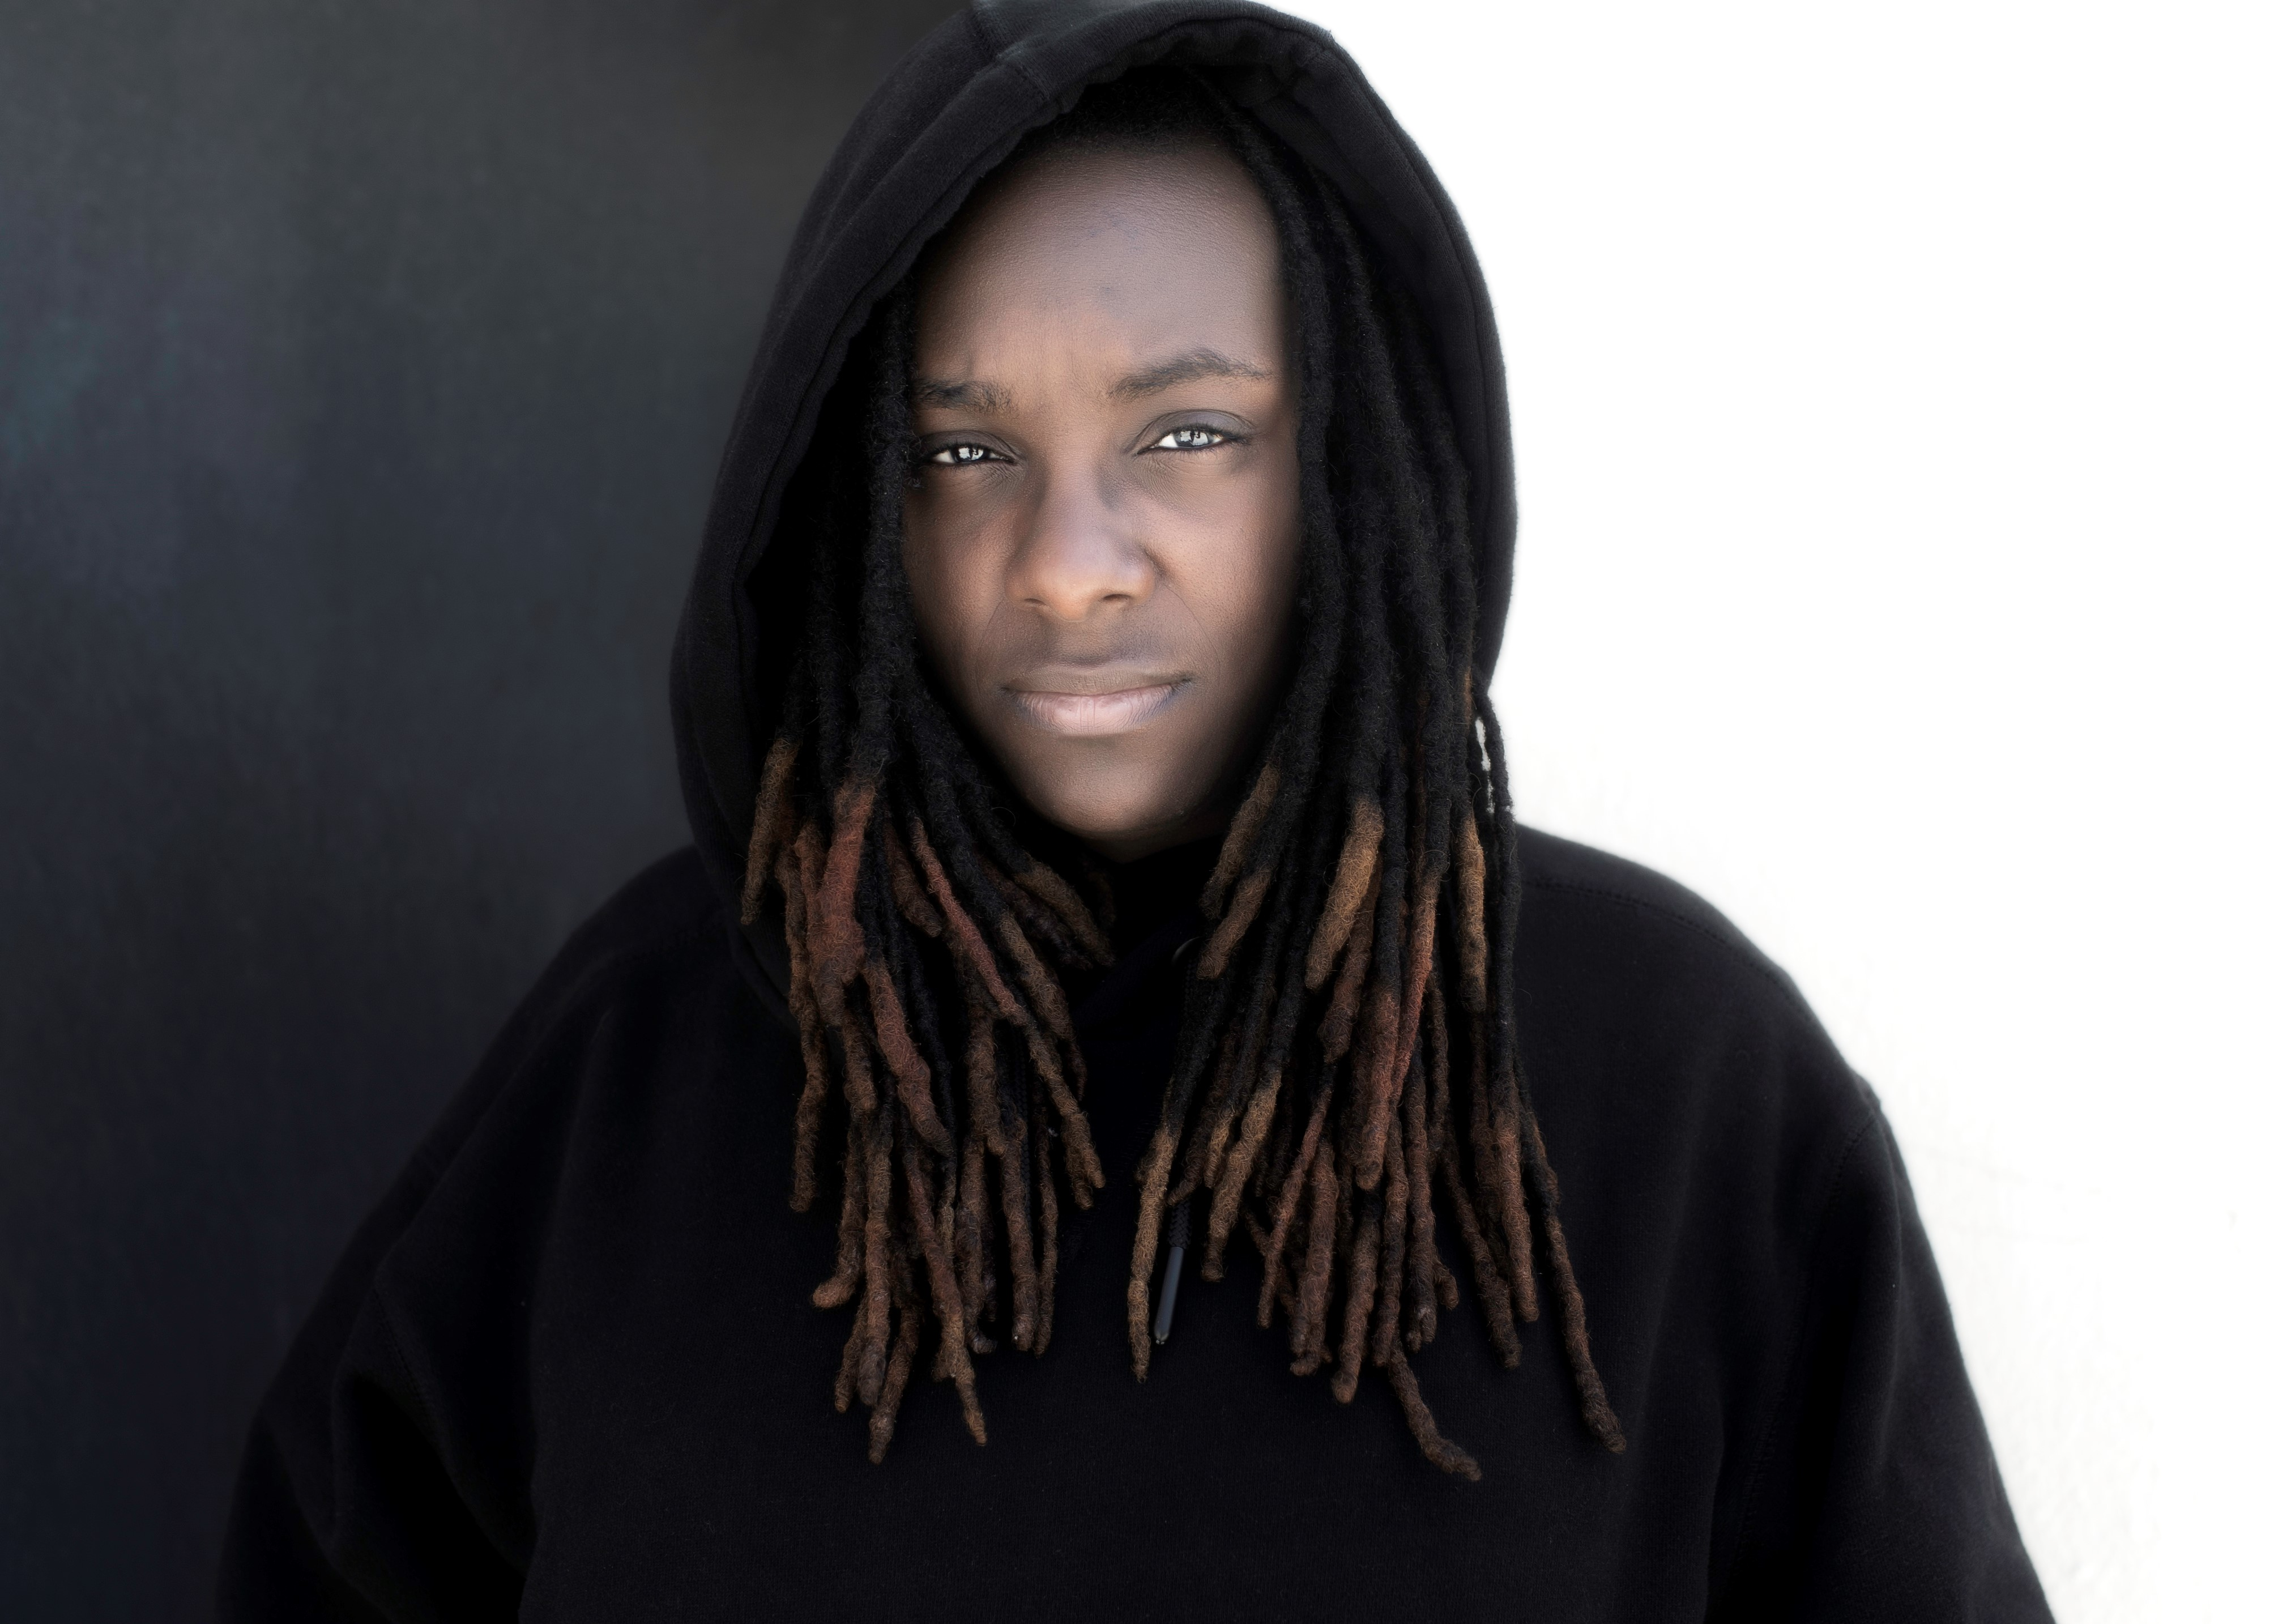 Jlin sees Footwork as African music